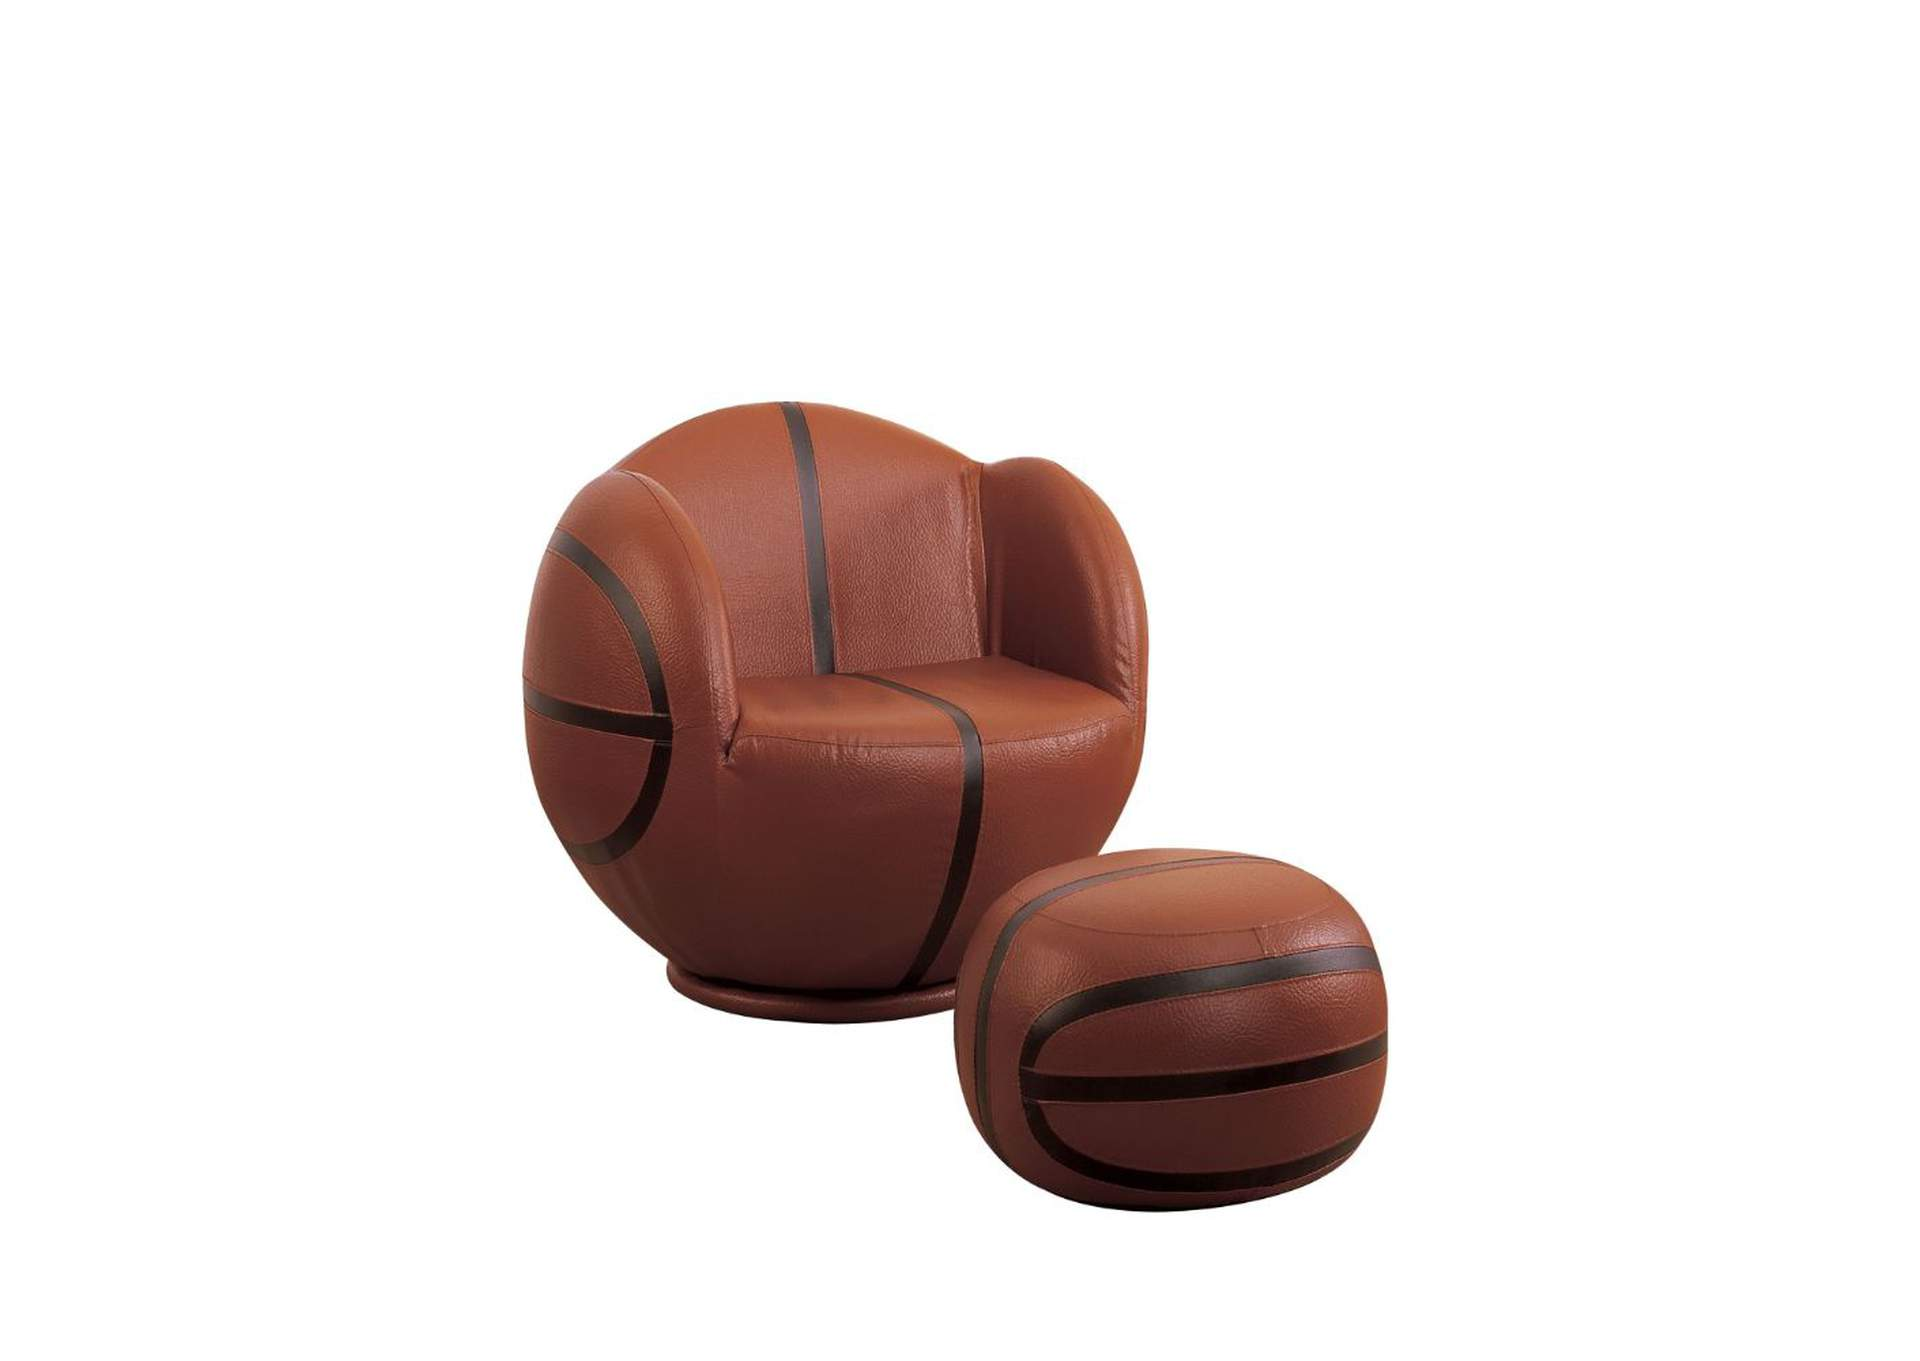 Outstanding Gorees Furniture Opelika Al All Star Basketball Brown Unemploymentrelief Wooden Chair Designs For Living Room Unemploymentrelieforg